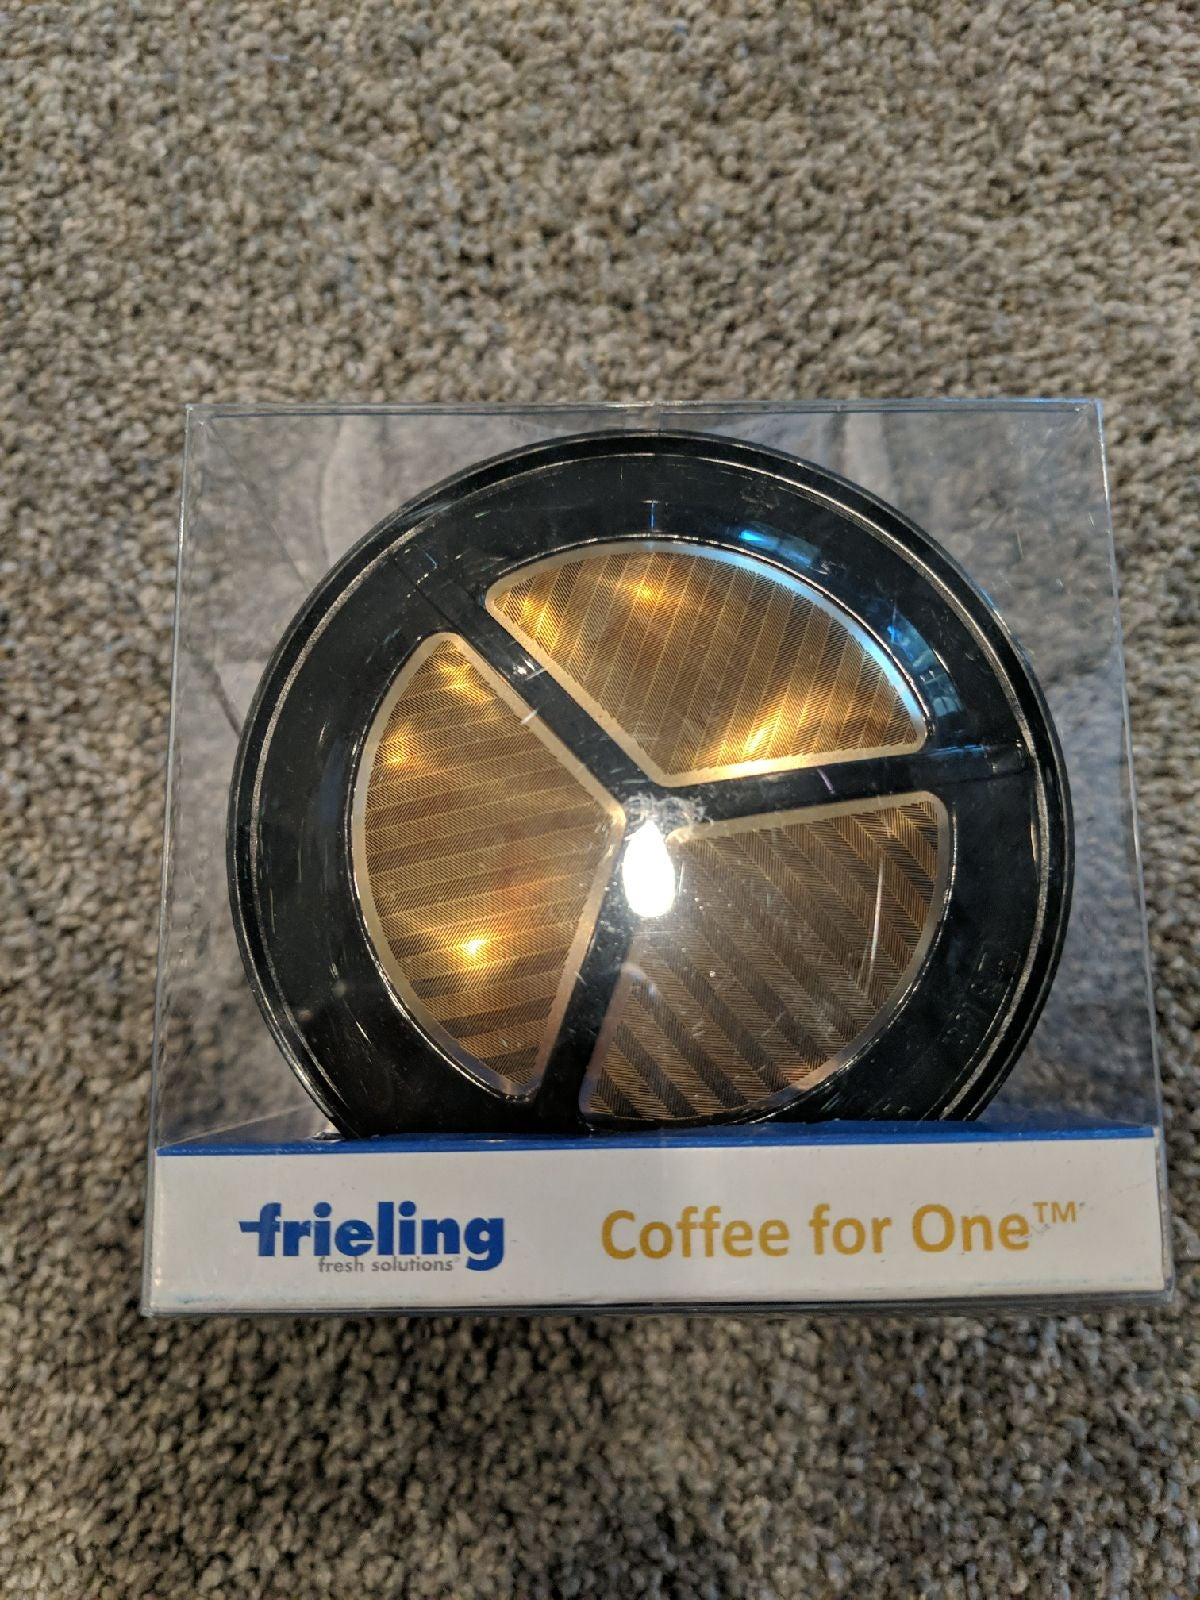 24k gold plated drip coffee filter